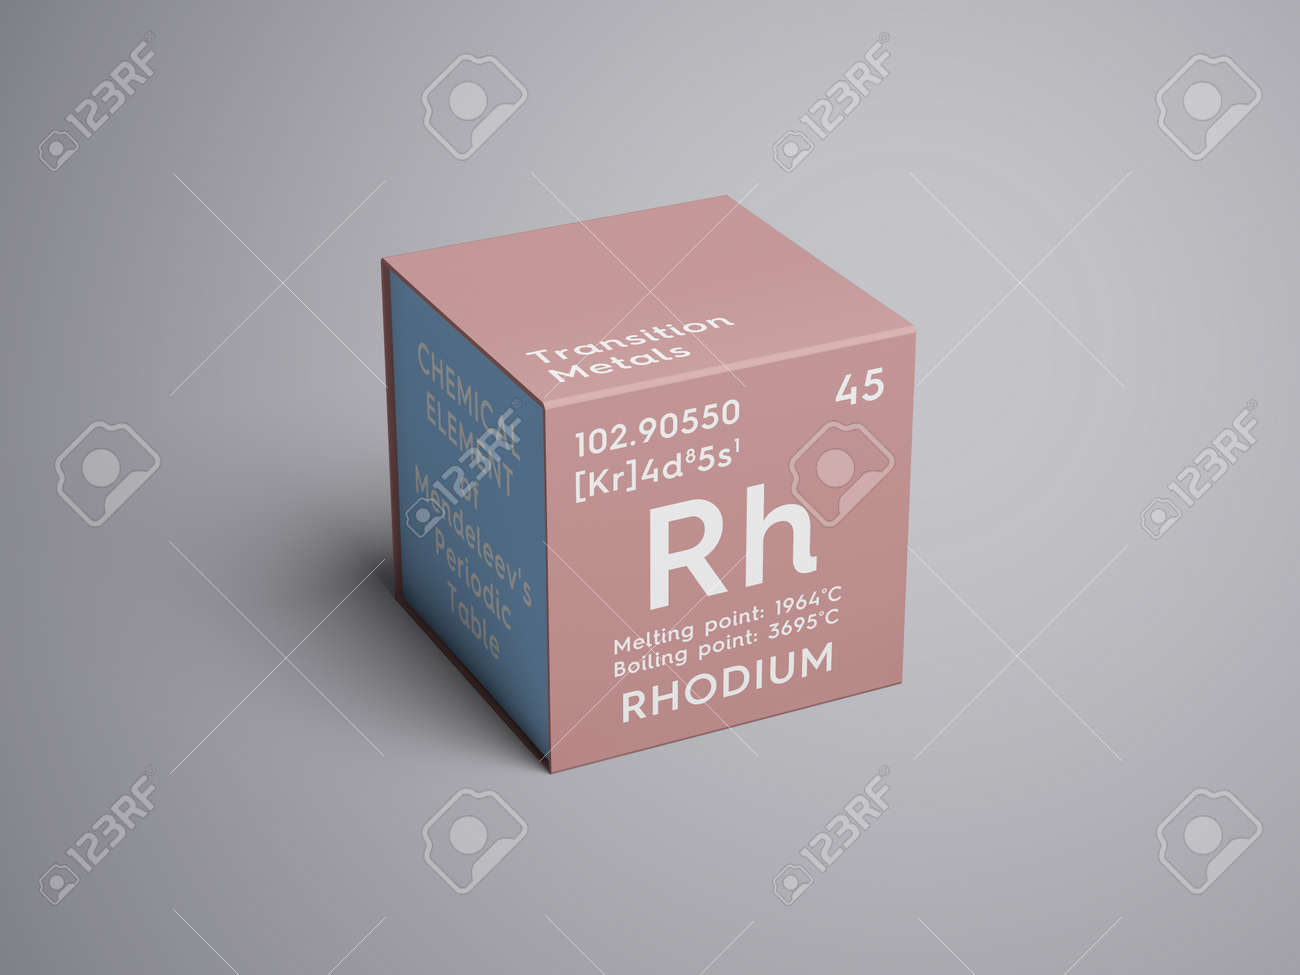 Rhodium transition metals chemical element of mendeleevs rhodium transition metals chemical element of mendeleevs periodic table rhodium in a square gamestrikefo Image collections